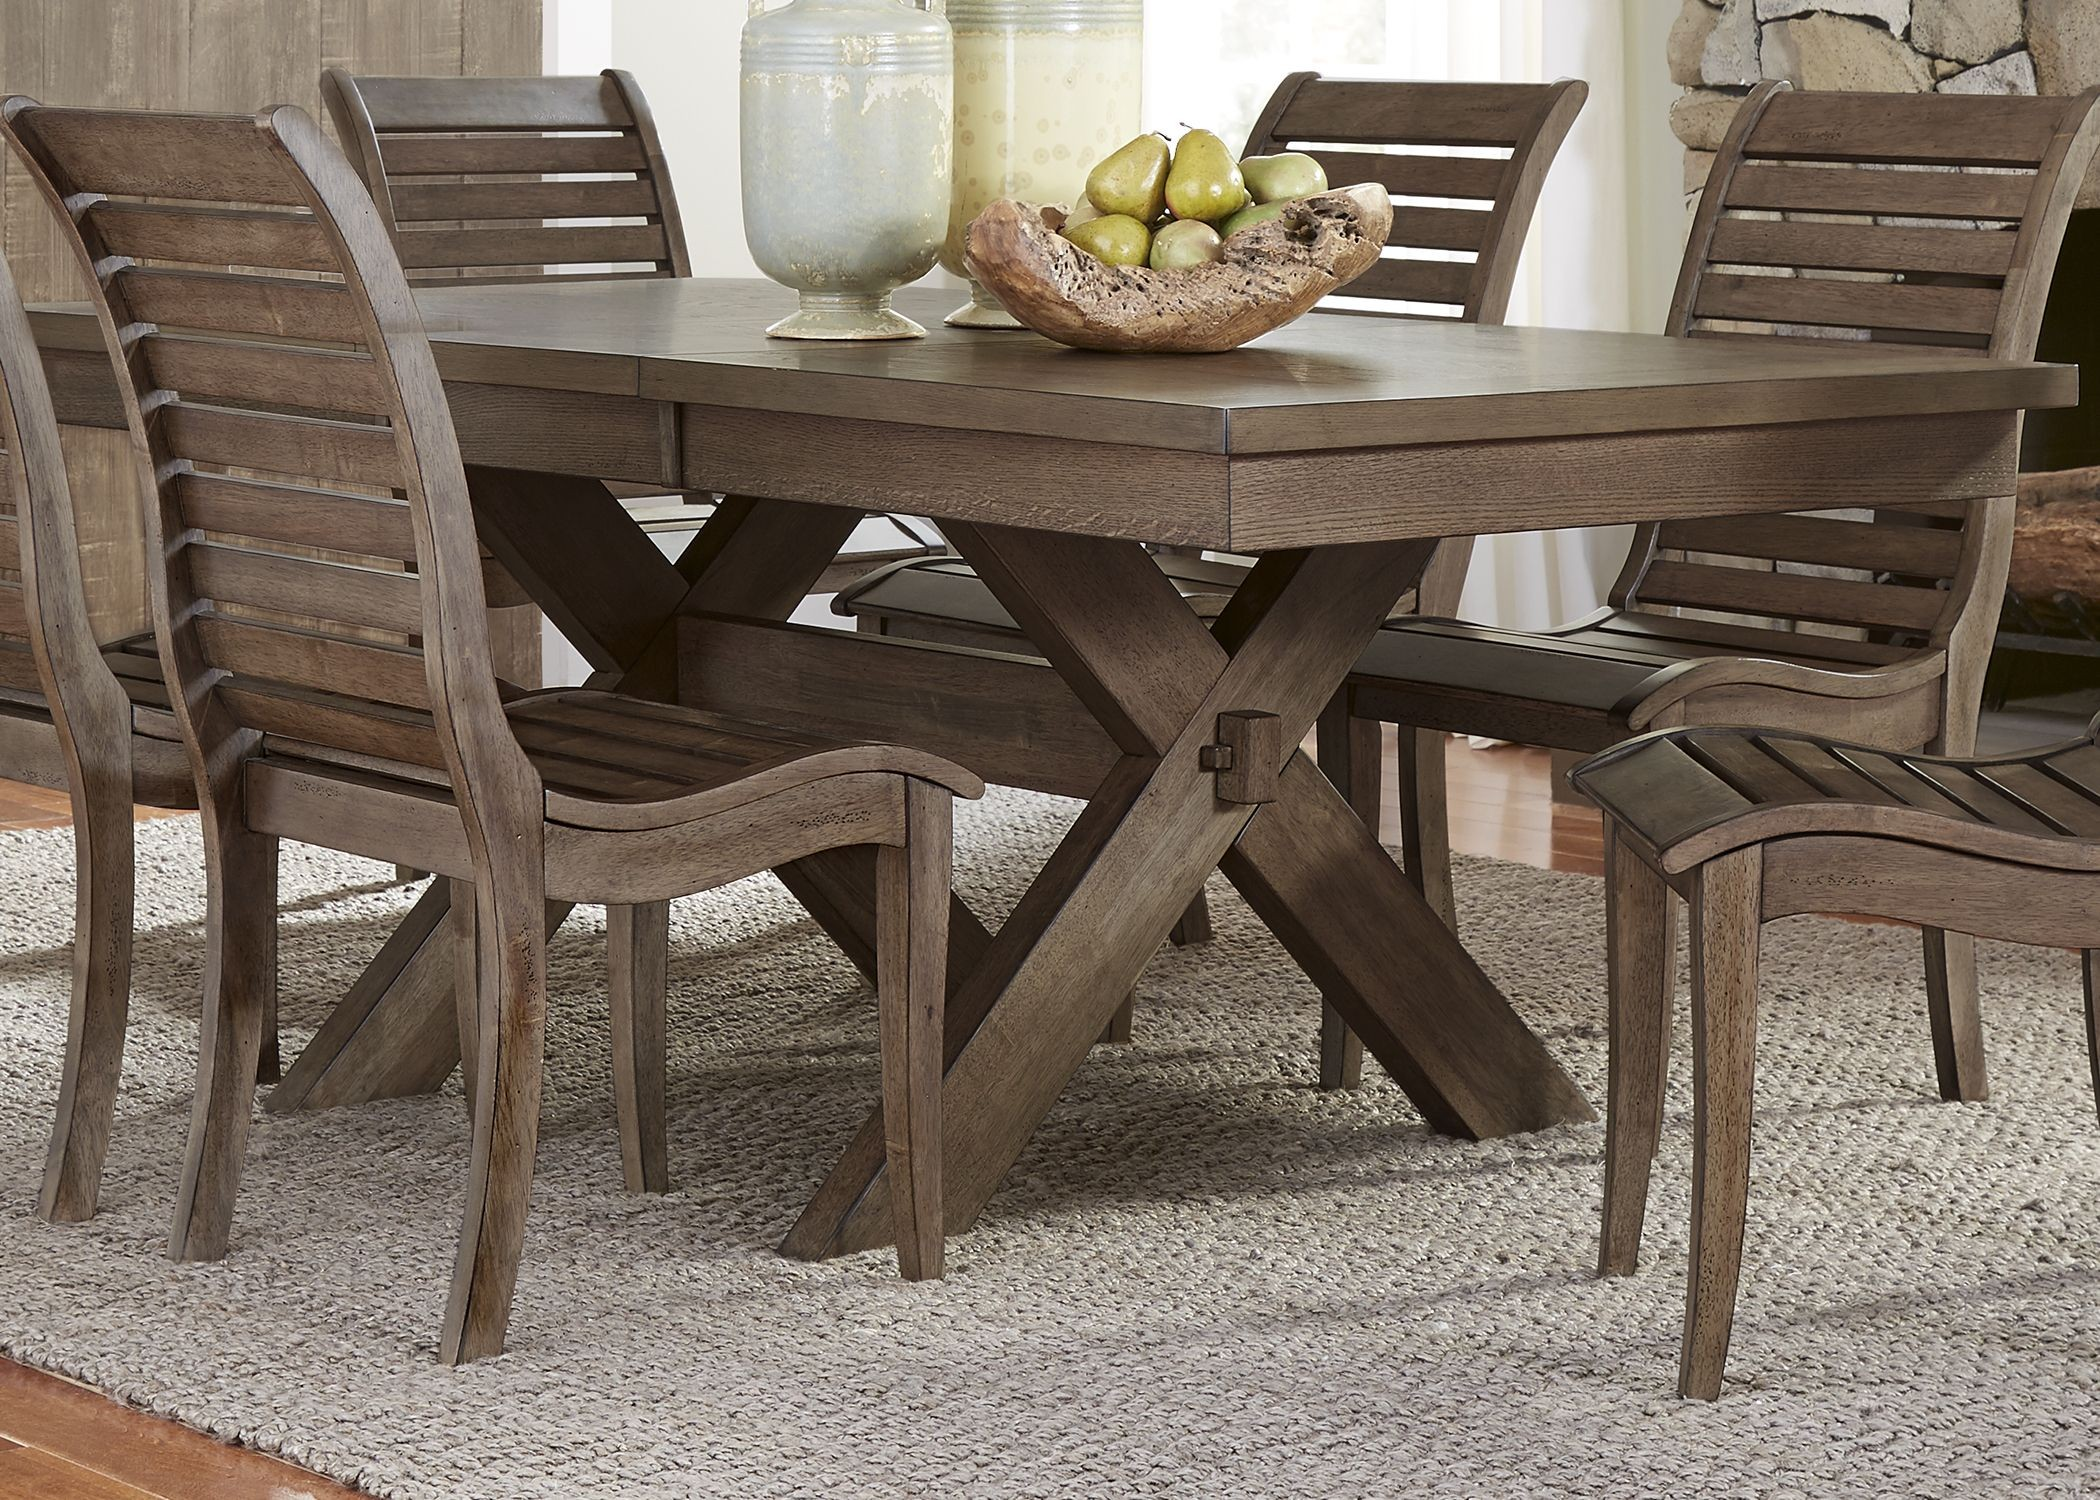 Bayside Crossing Chestnut Extendable Trestle Dining Room Set. Bayside  Crossing From Liberty. 914130. 914128. 914127